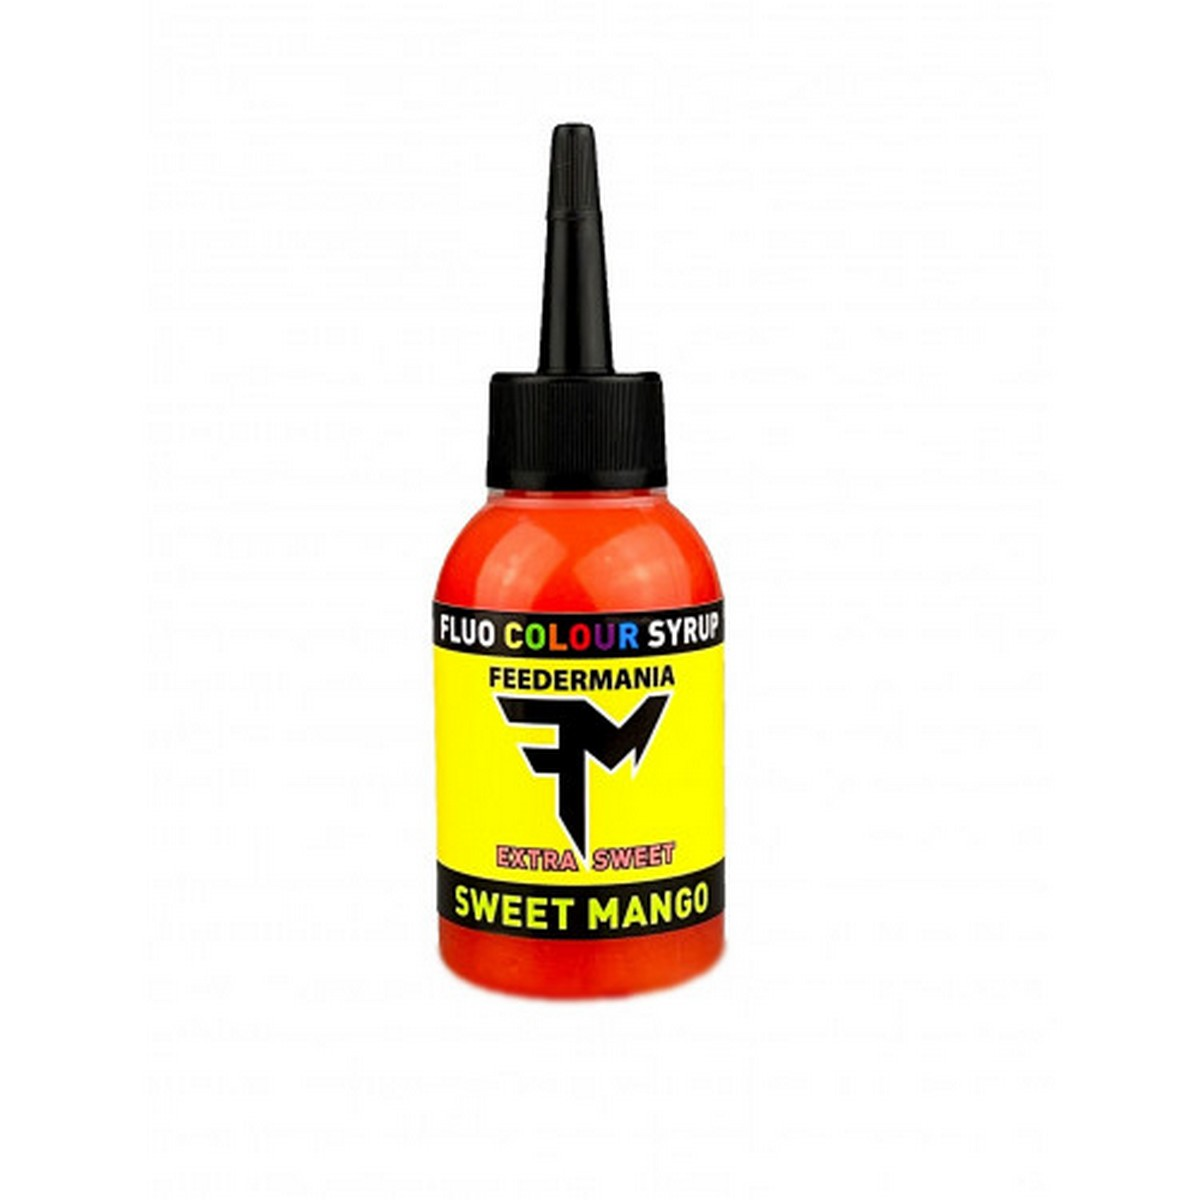 FLUO COLOUR SYRUP SWEET MANGO 75 ML